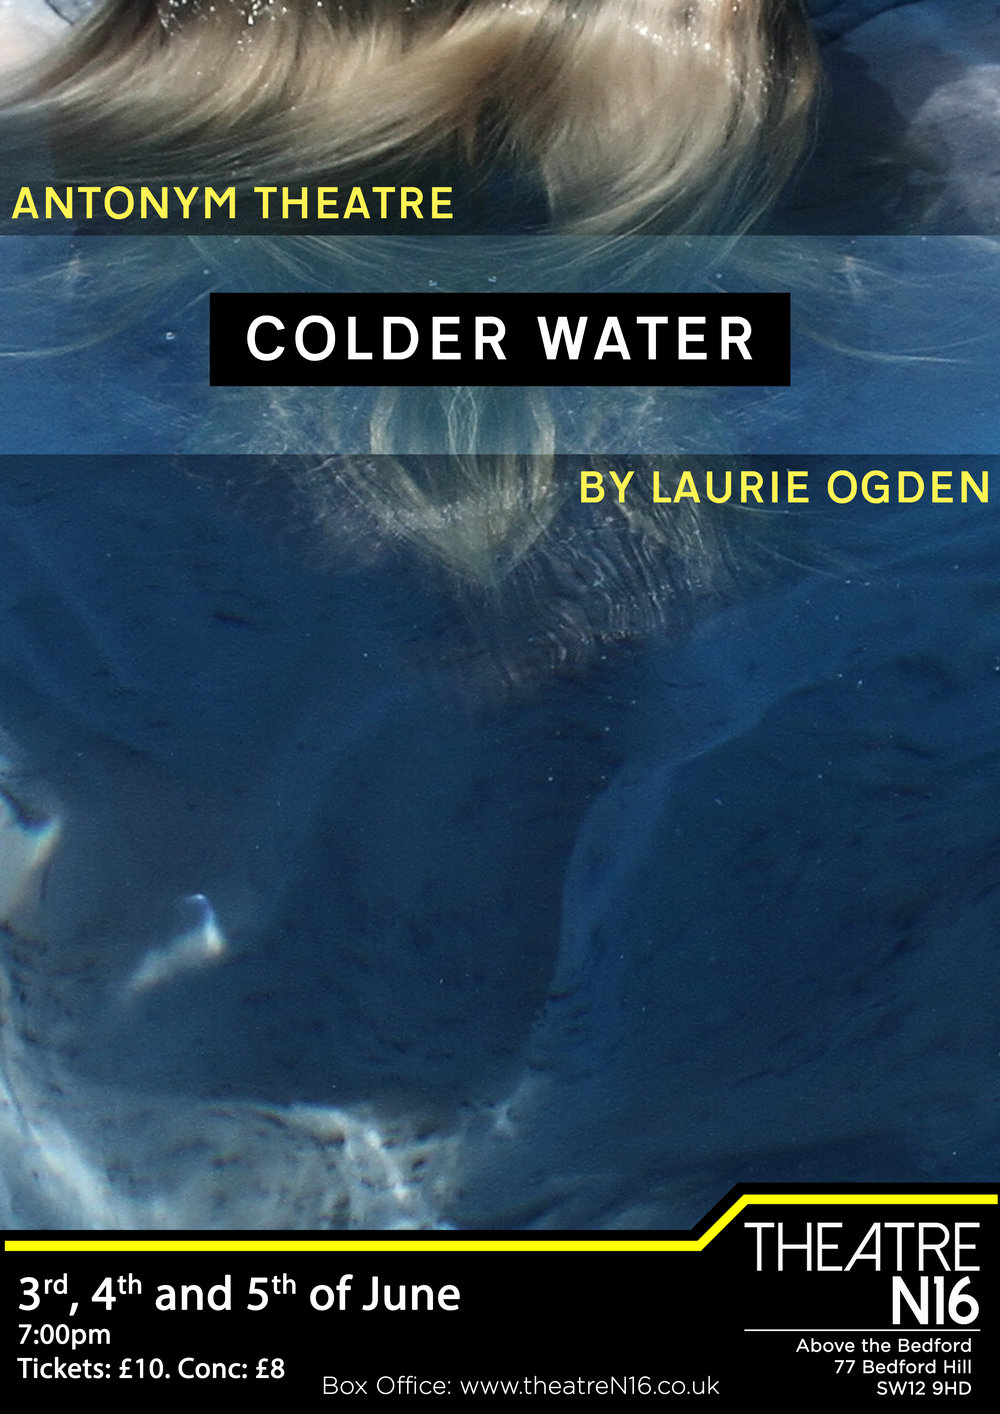 Colder Water Final 2 with footer.jpg